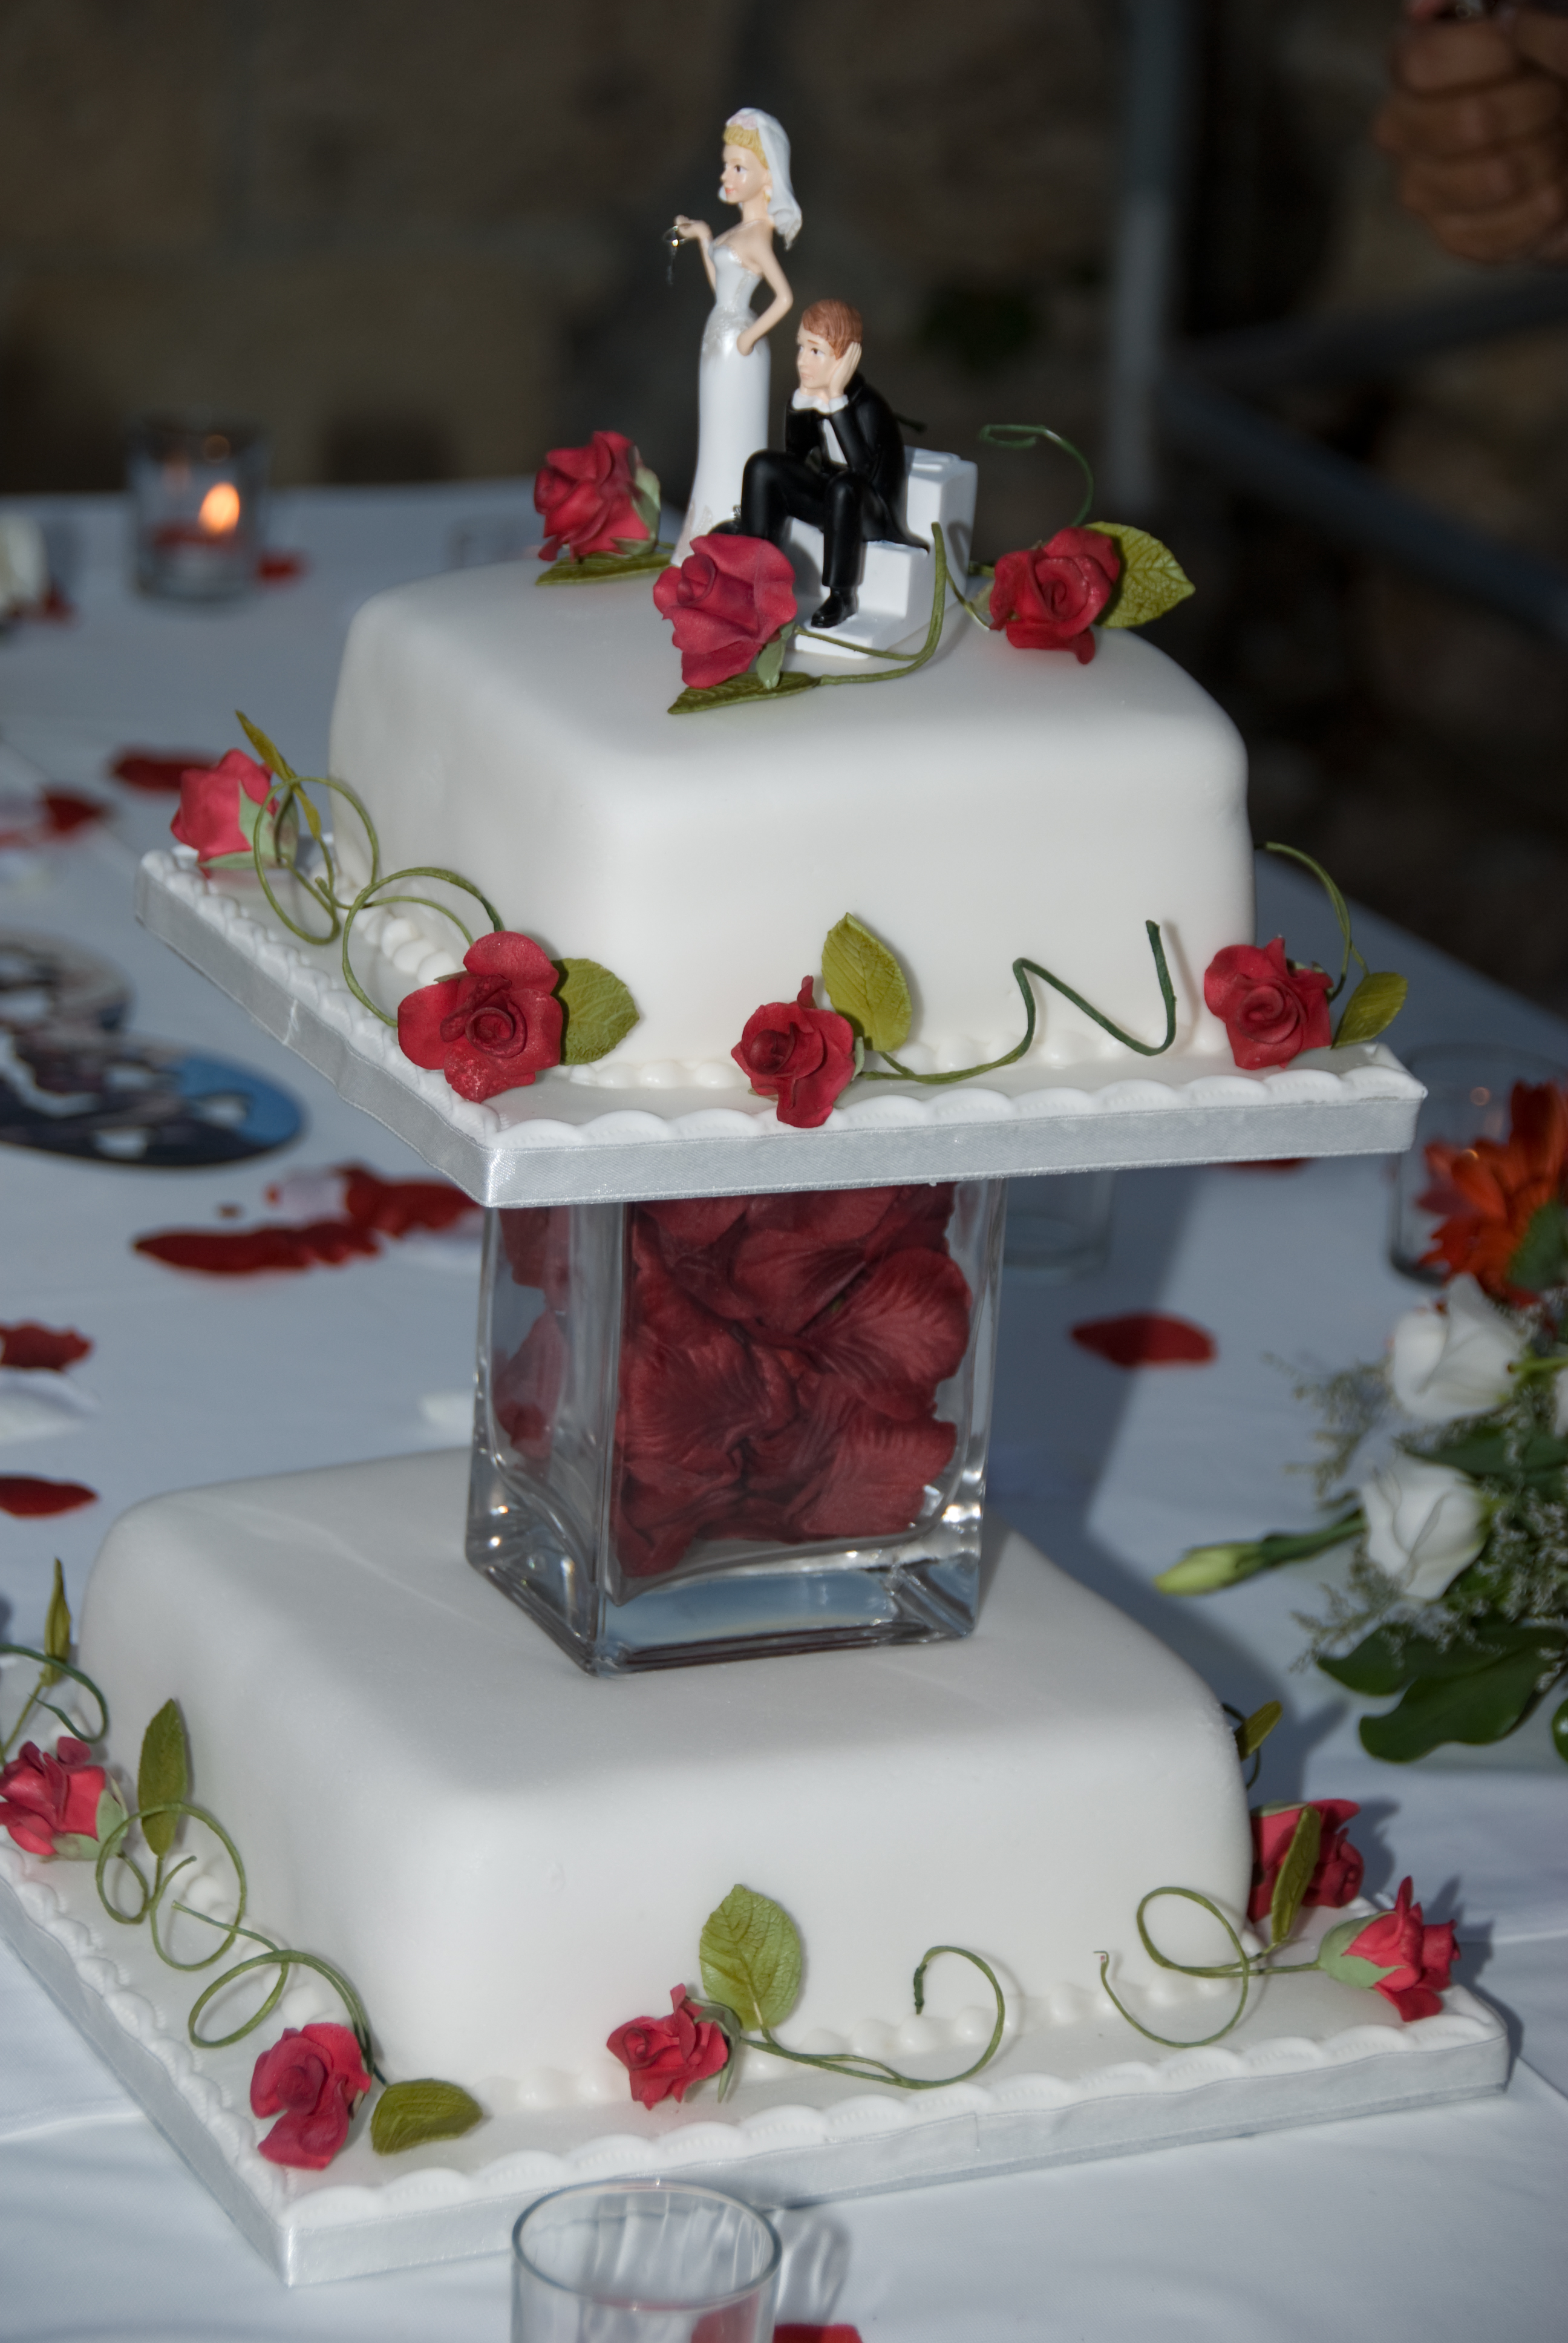 Wedding cakes in Northern Cyprus (37)